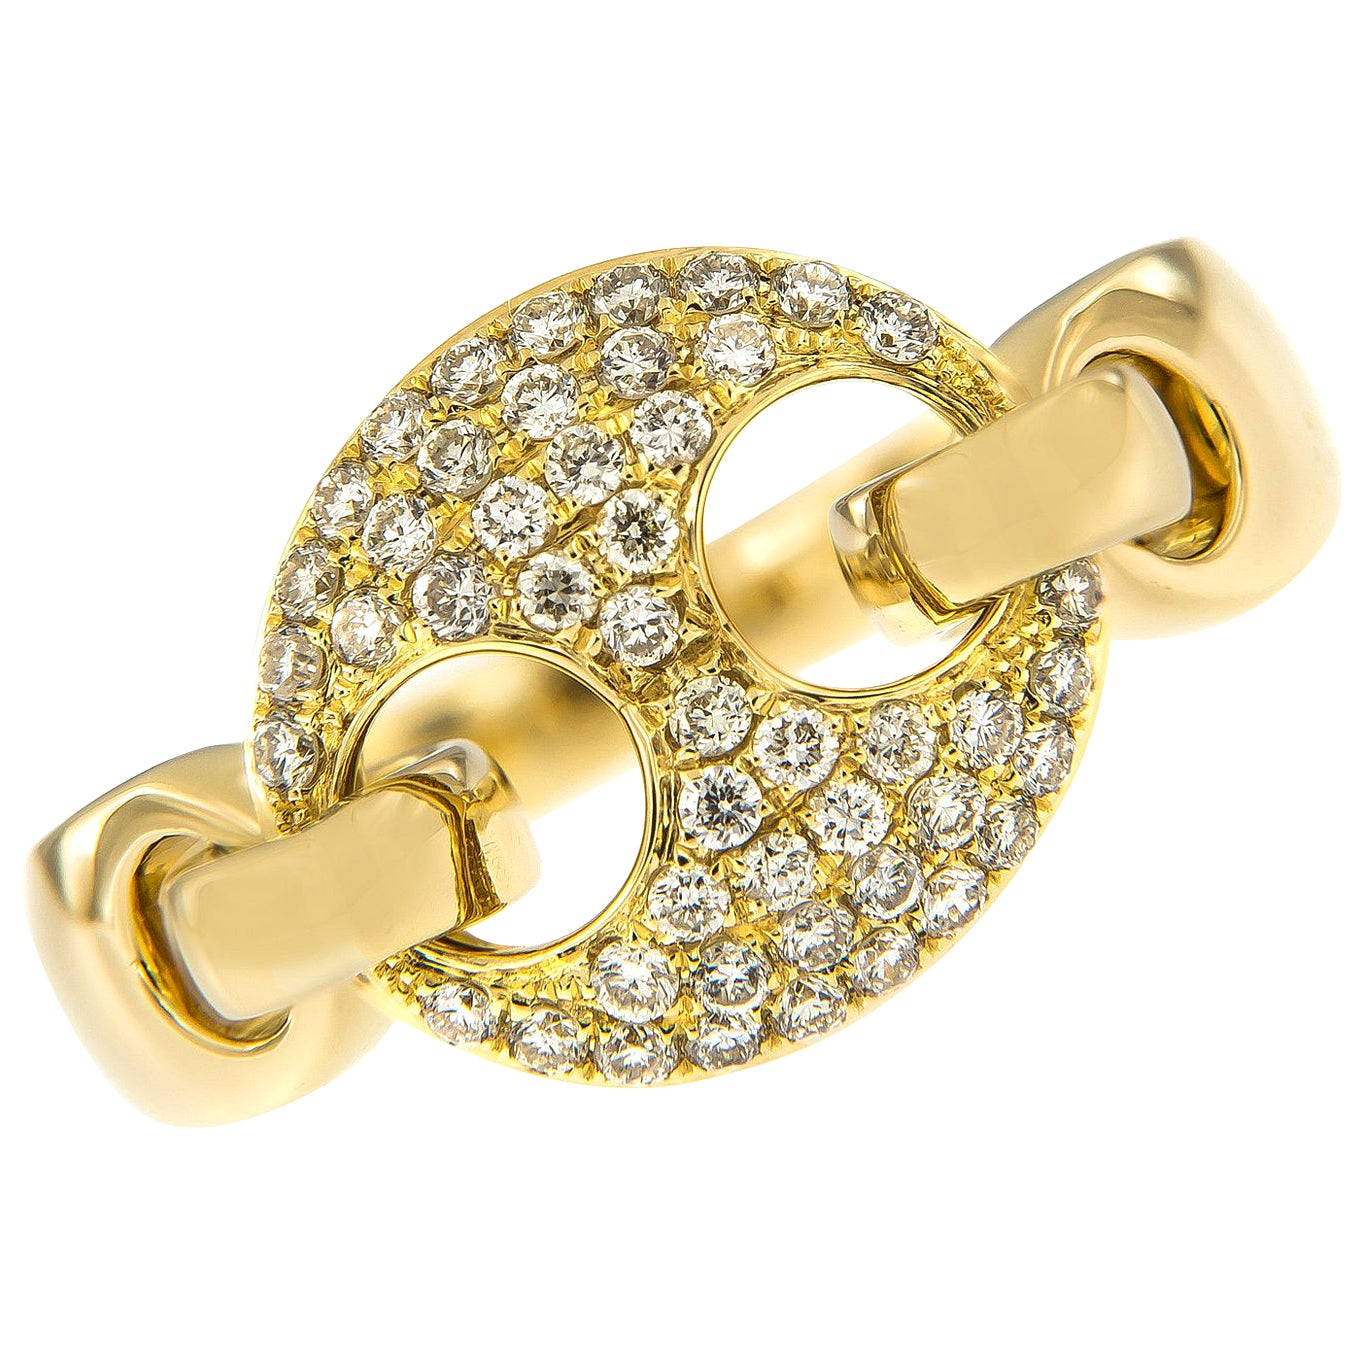 Gucci Style Link Diamond and 18 Karat Yellow Gold Fashion Ring